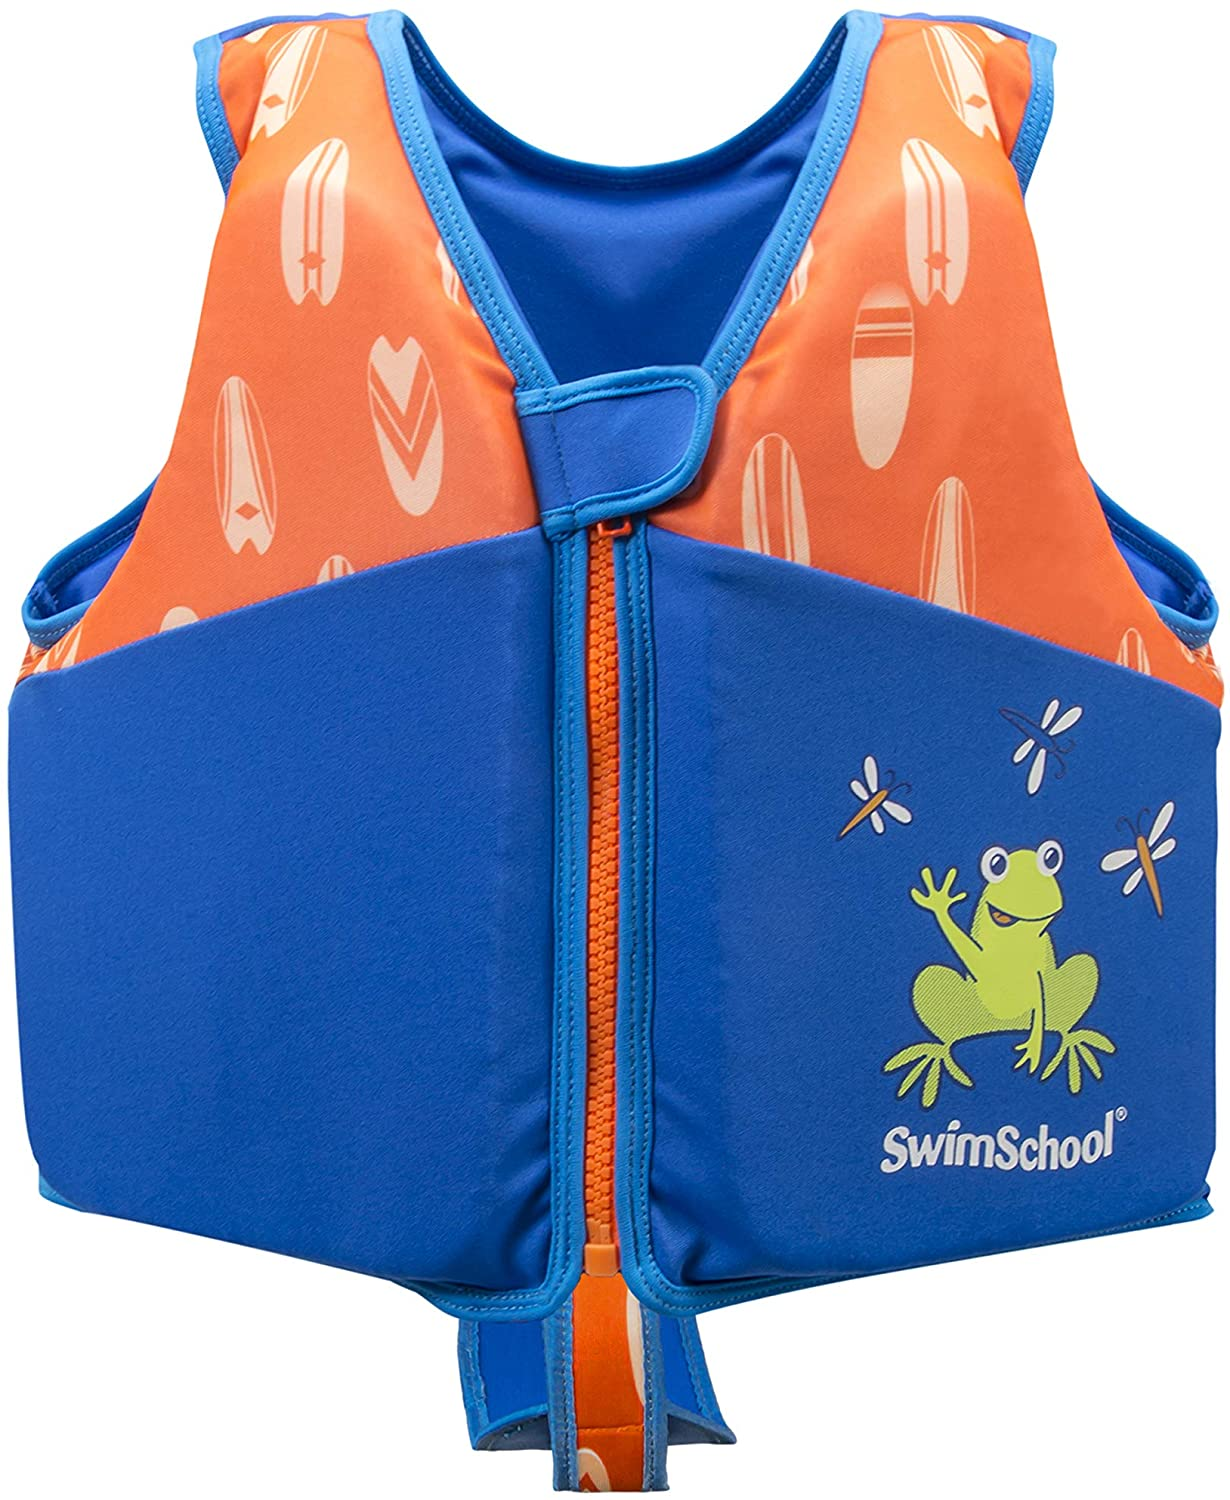 Swim Trainer Vest - Sleeveless